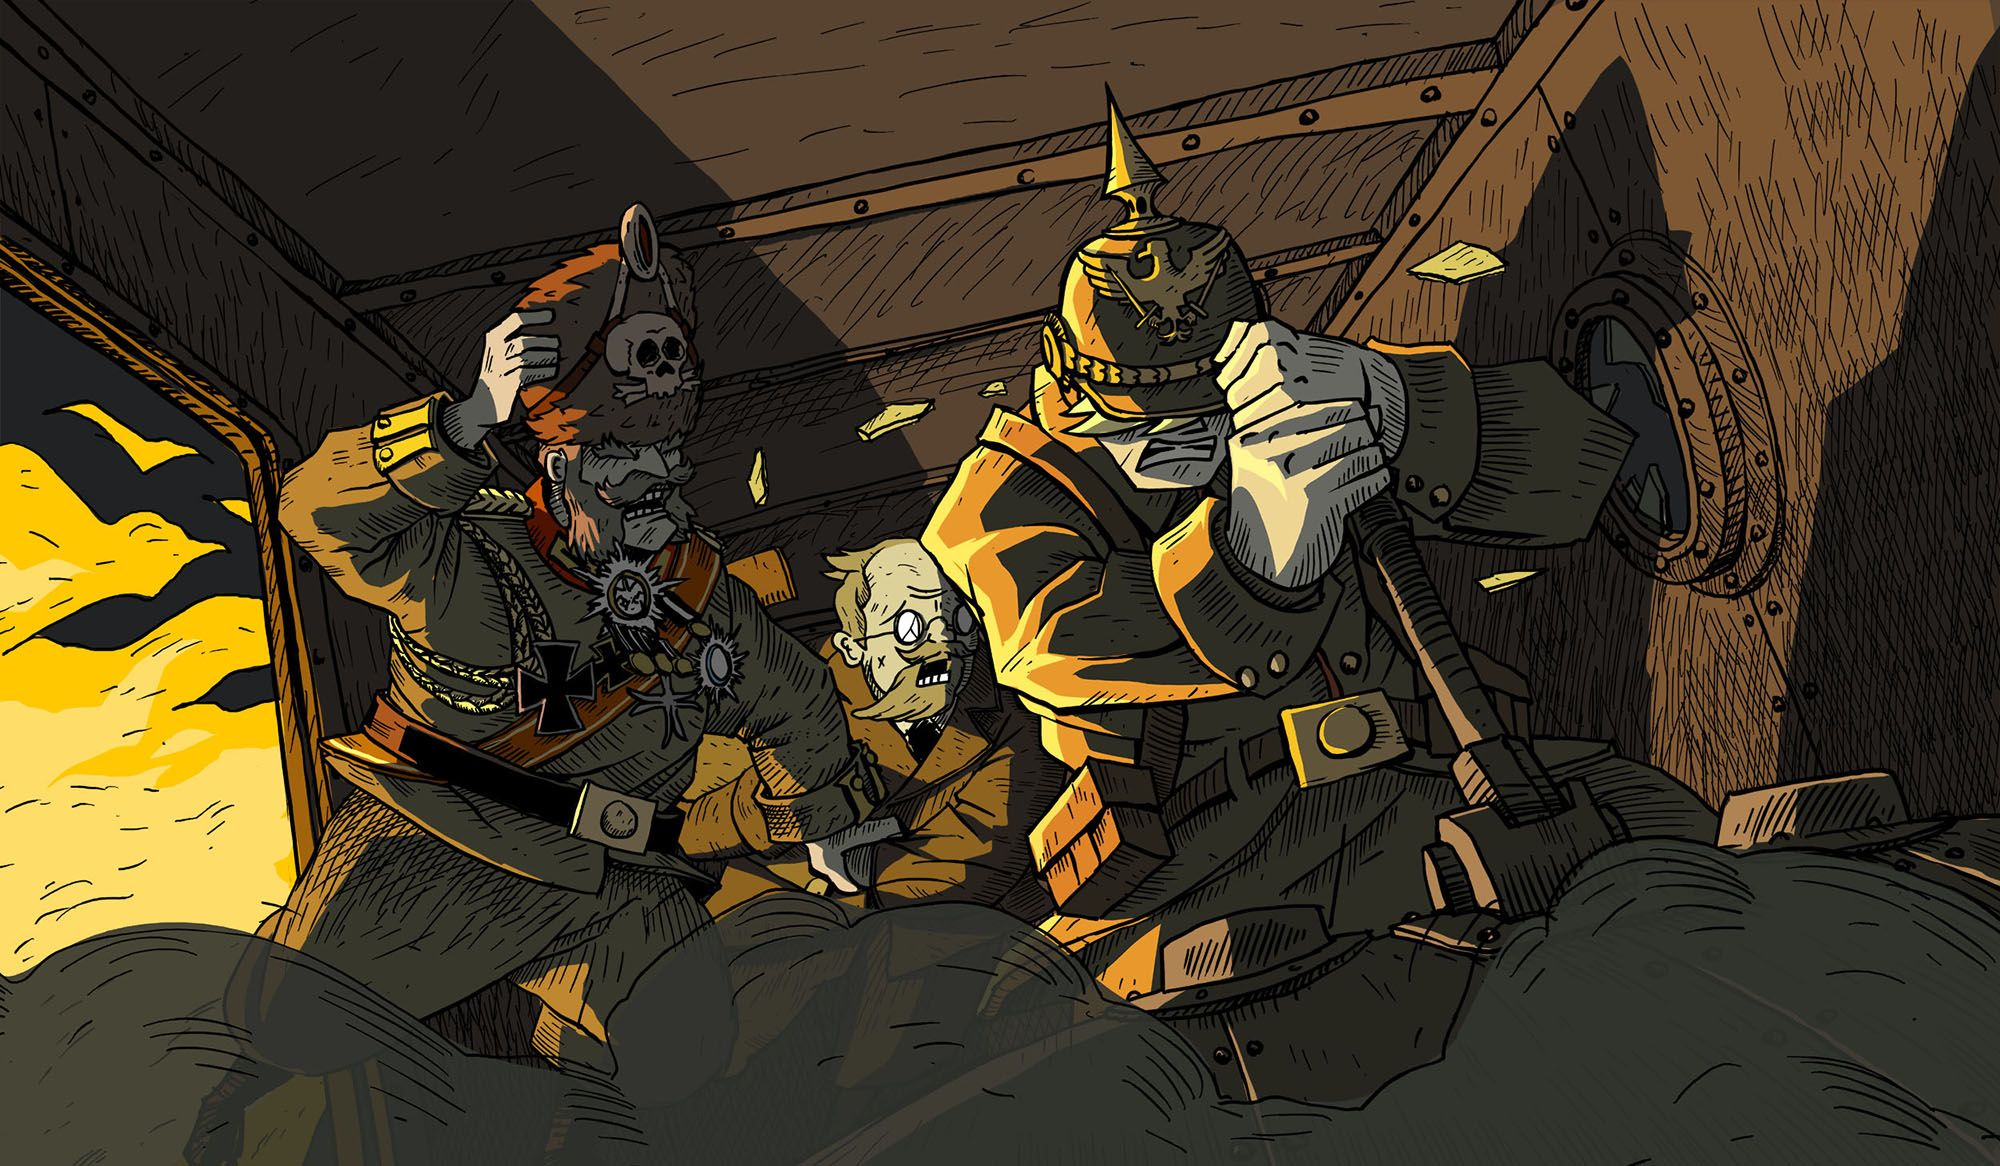 Valiant Hearts: The Great War releases on 25 June